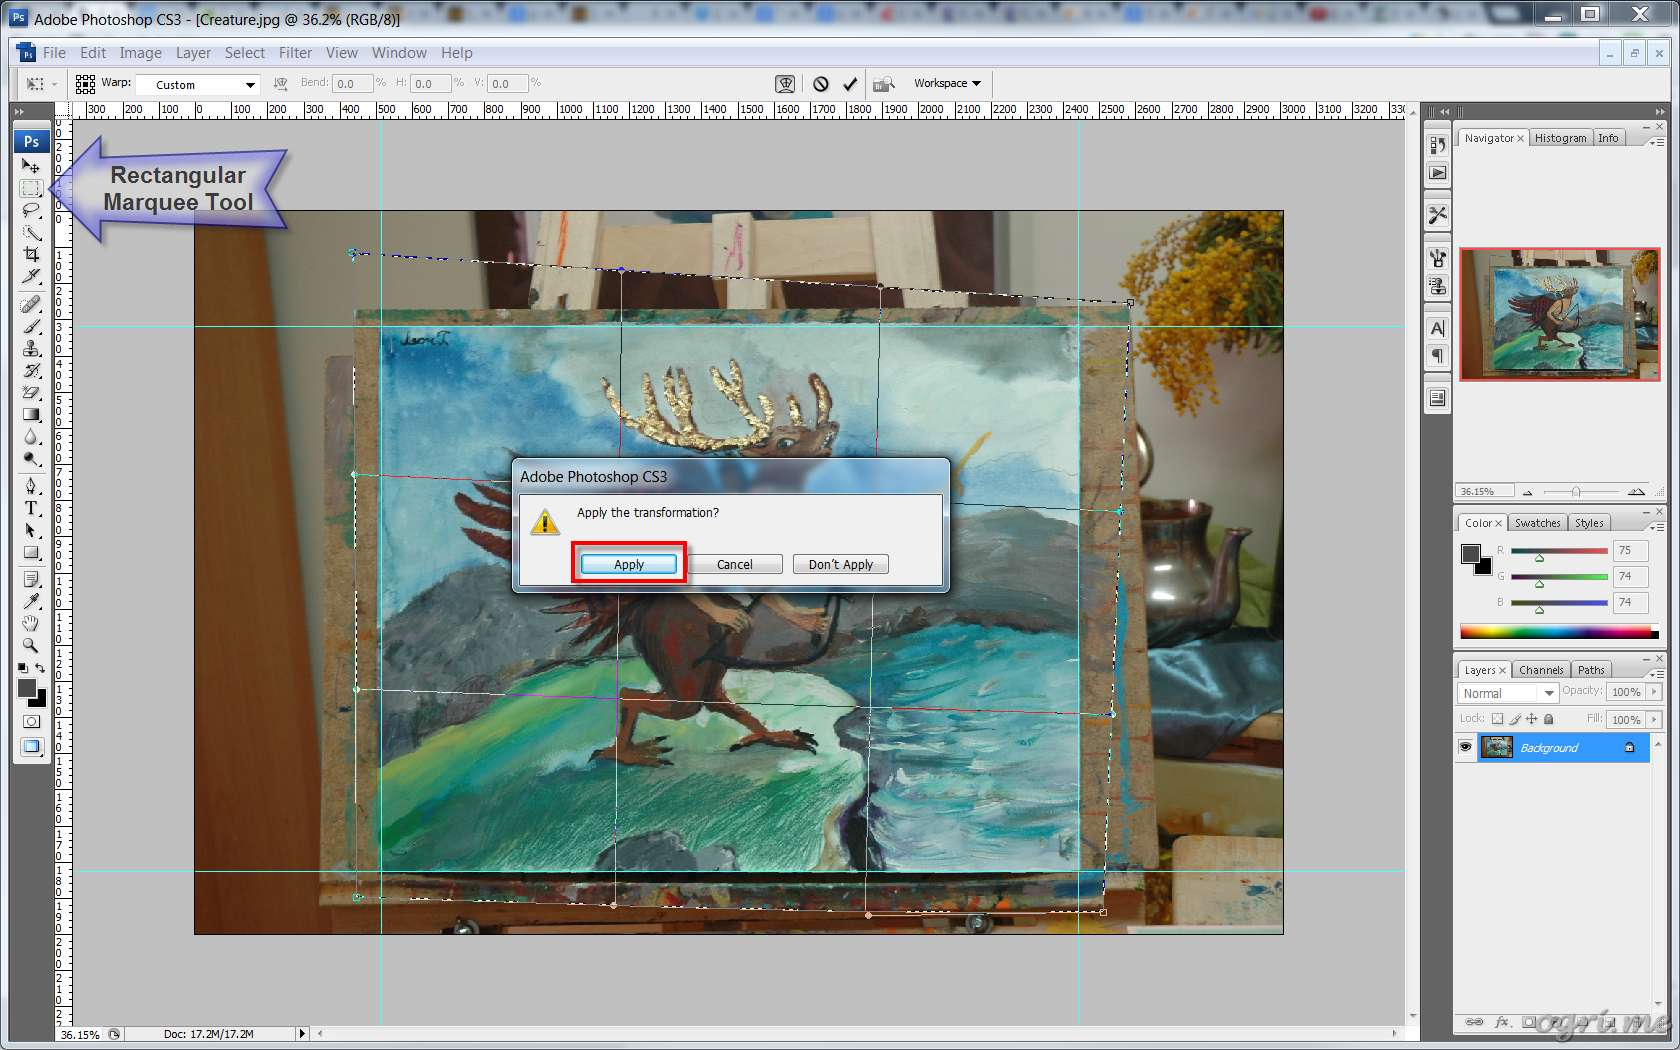 ogri.me | Photoshop: Processing photos of paintings for online gallery #08